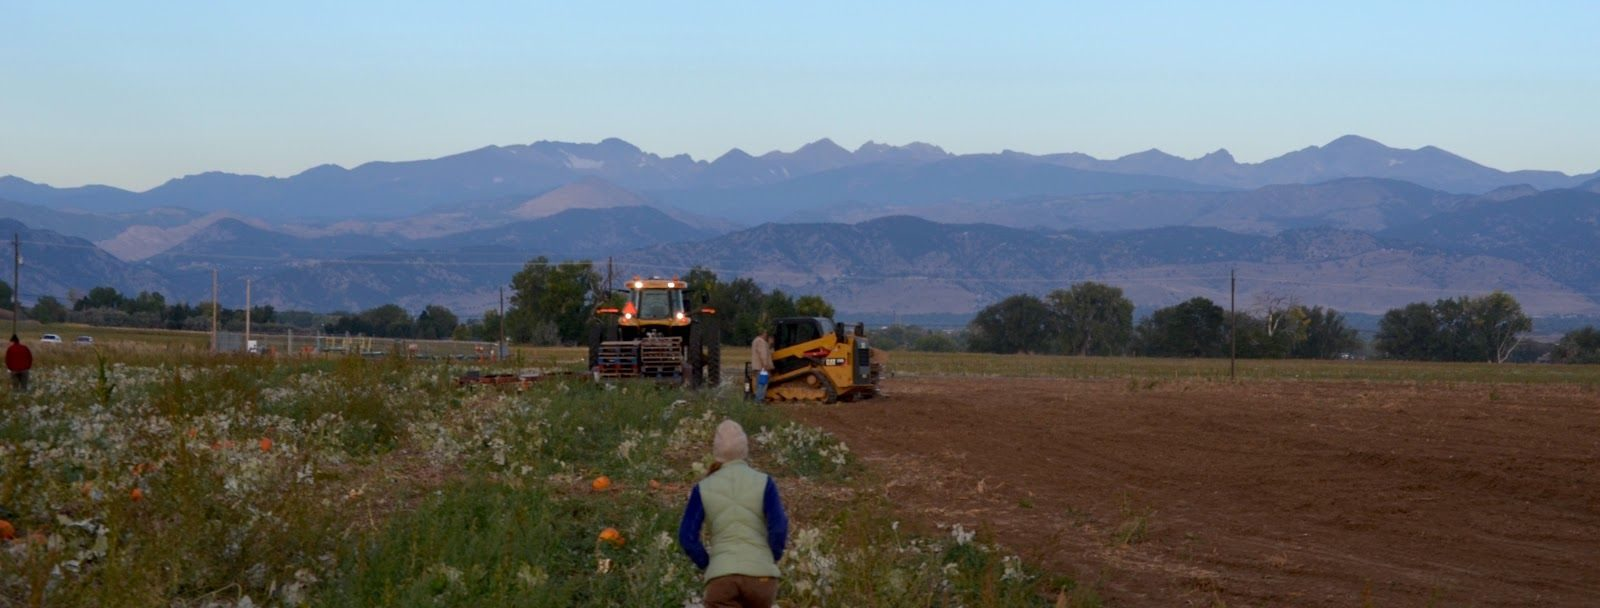 Mobile farm worker walks toward mountains on Colorado farm